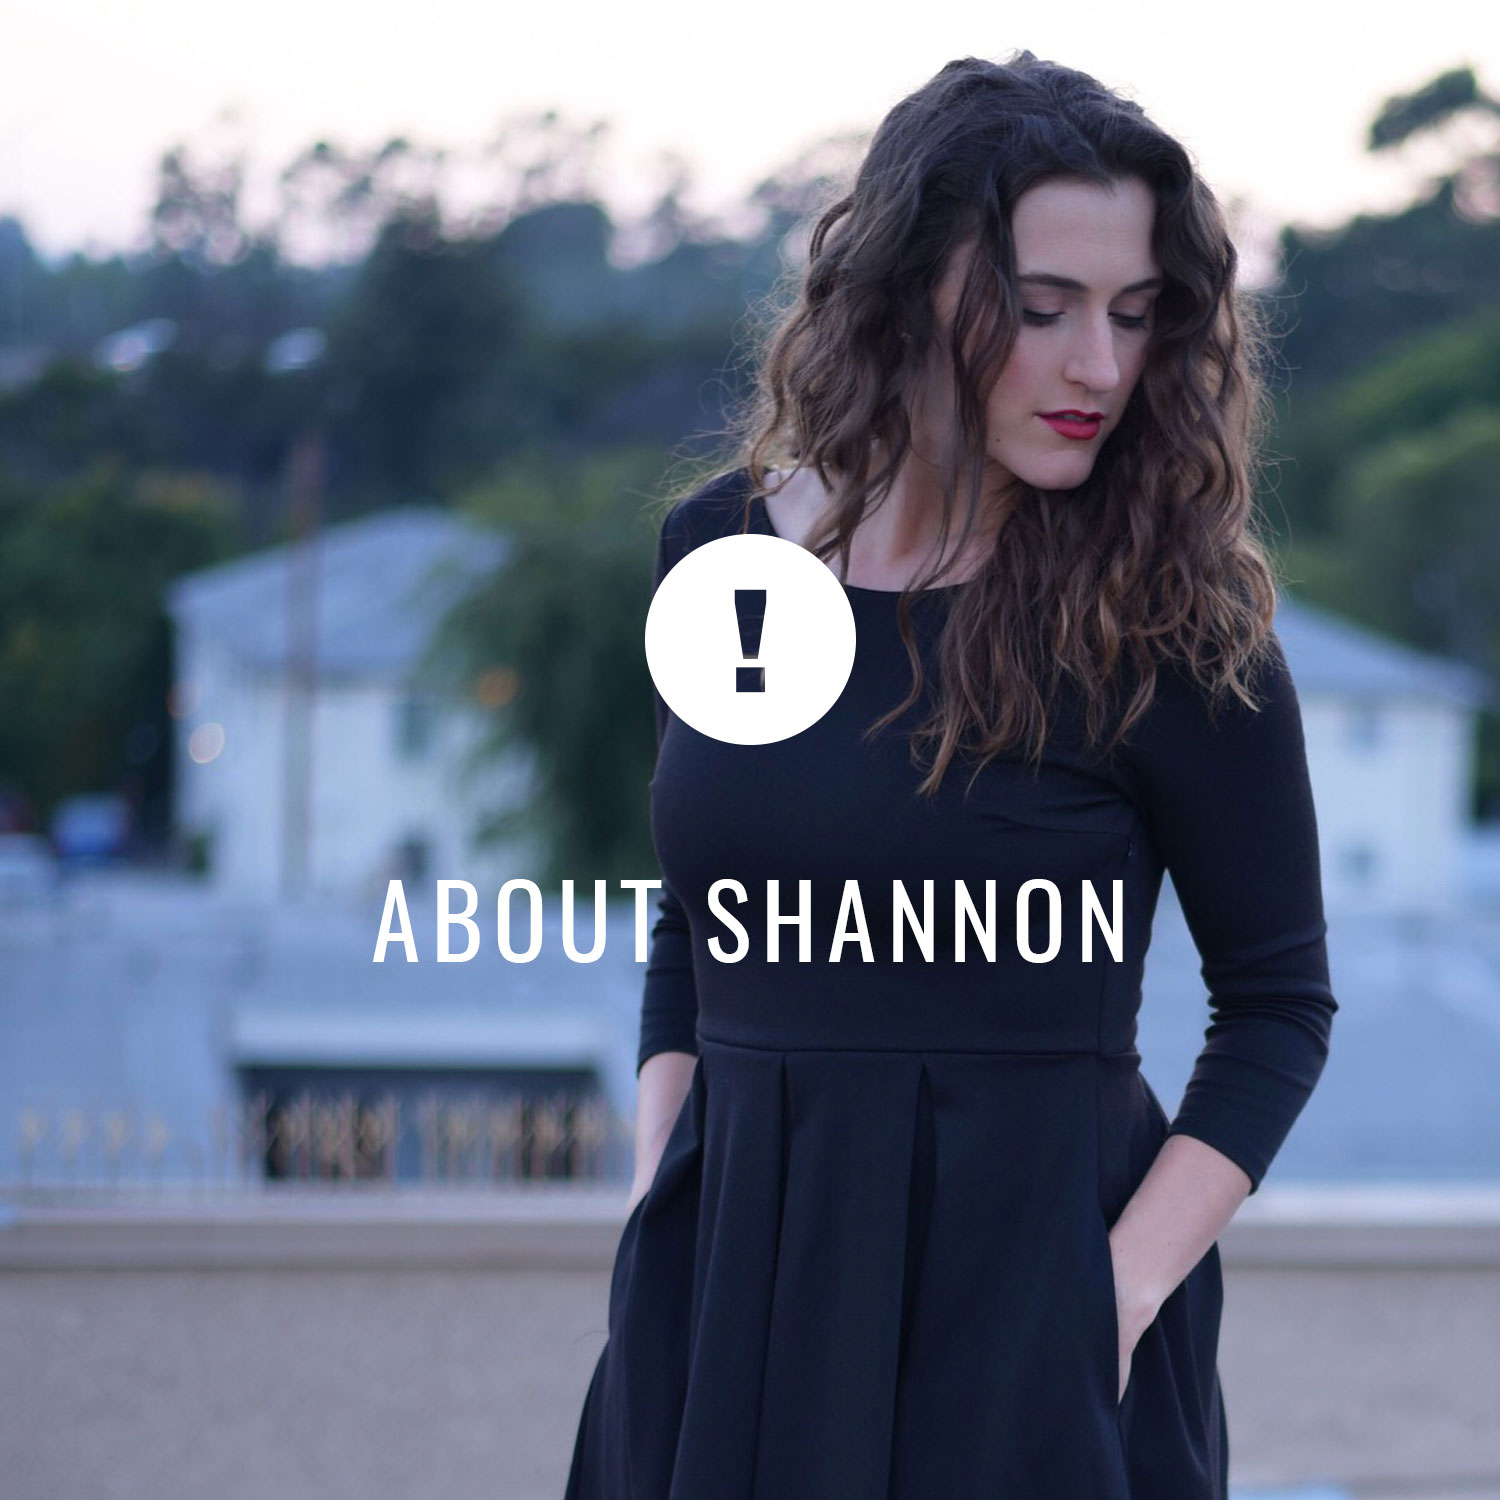 ABOUT-SHANNON.jpg